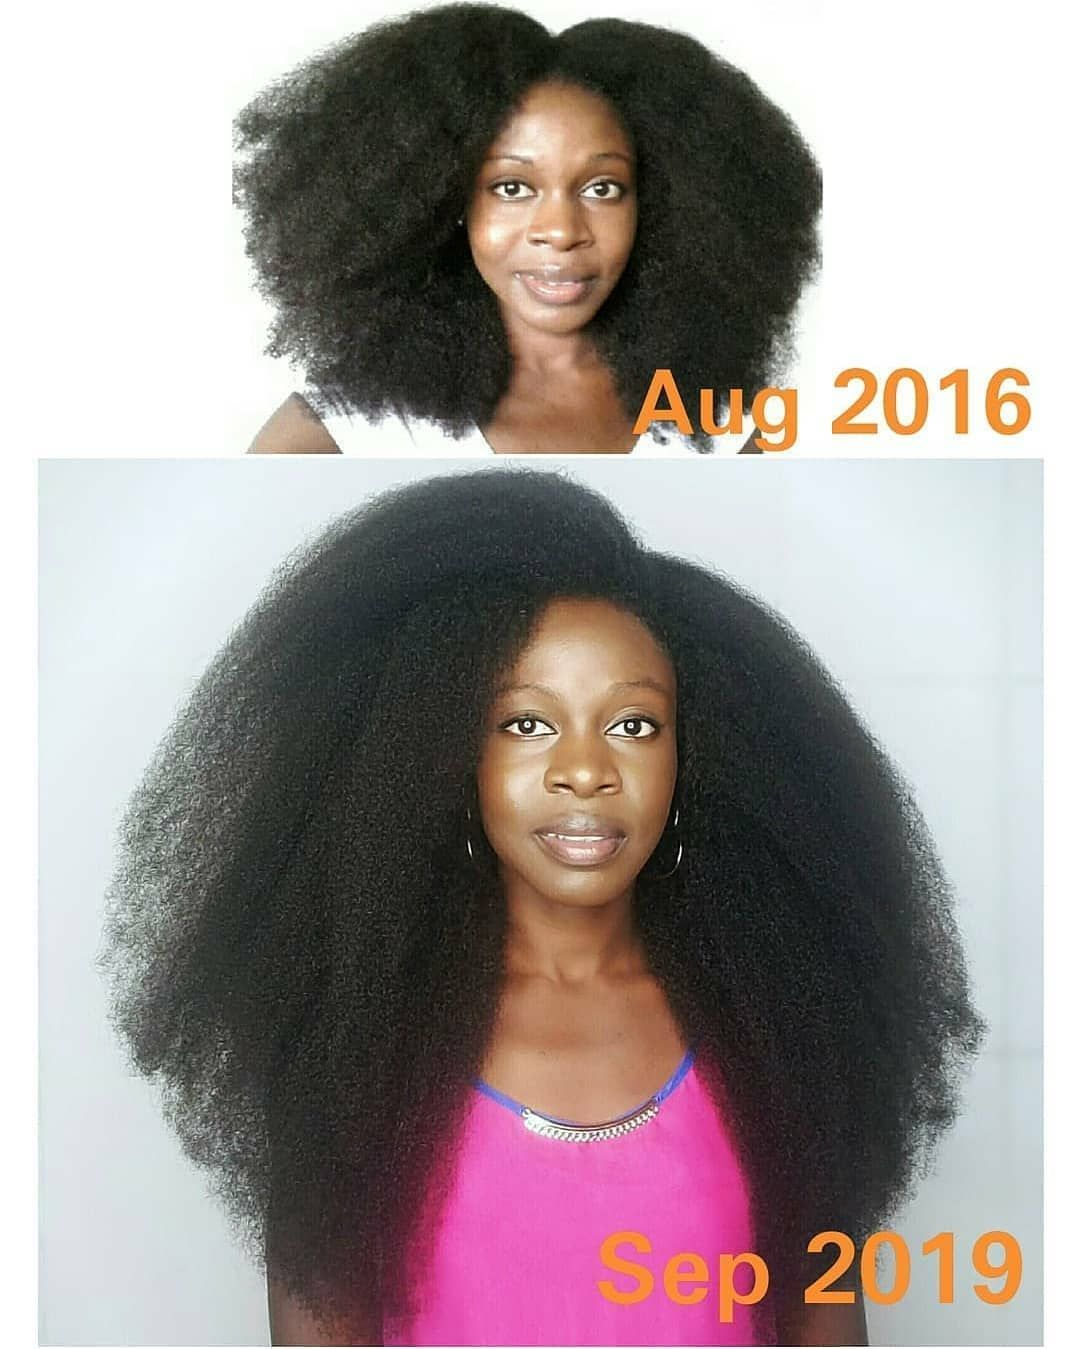 50ff97bb55ff6c3624f7d3a9ca4aebea - How To Get Rid Of Nits In Afro Hair